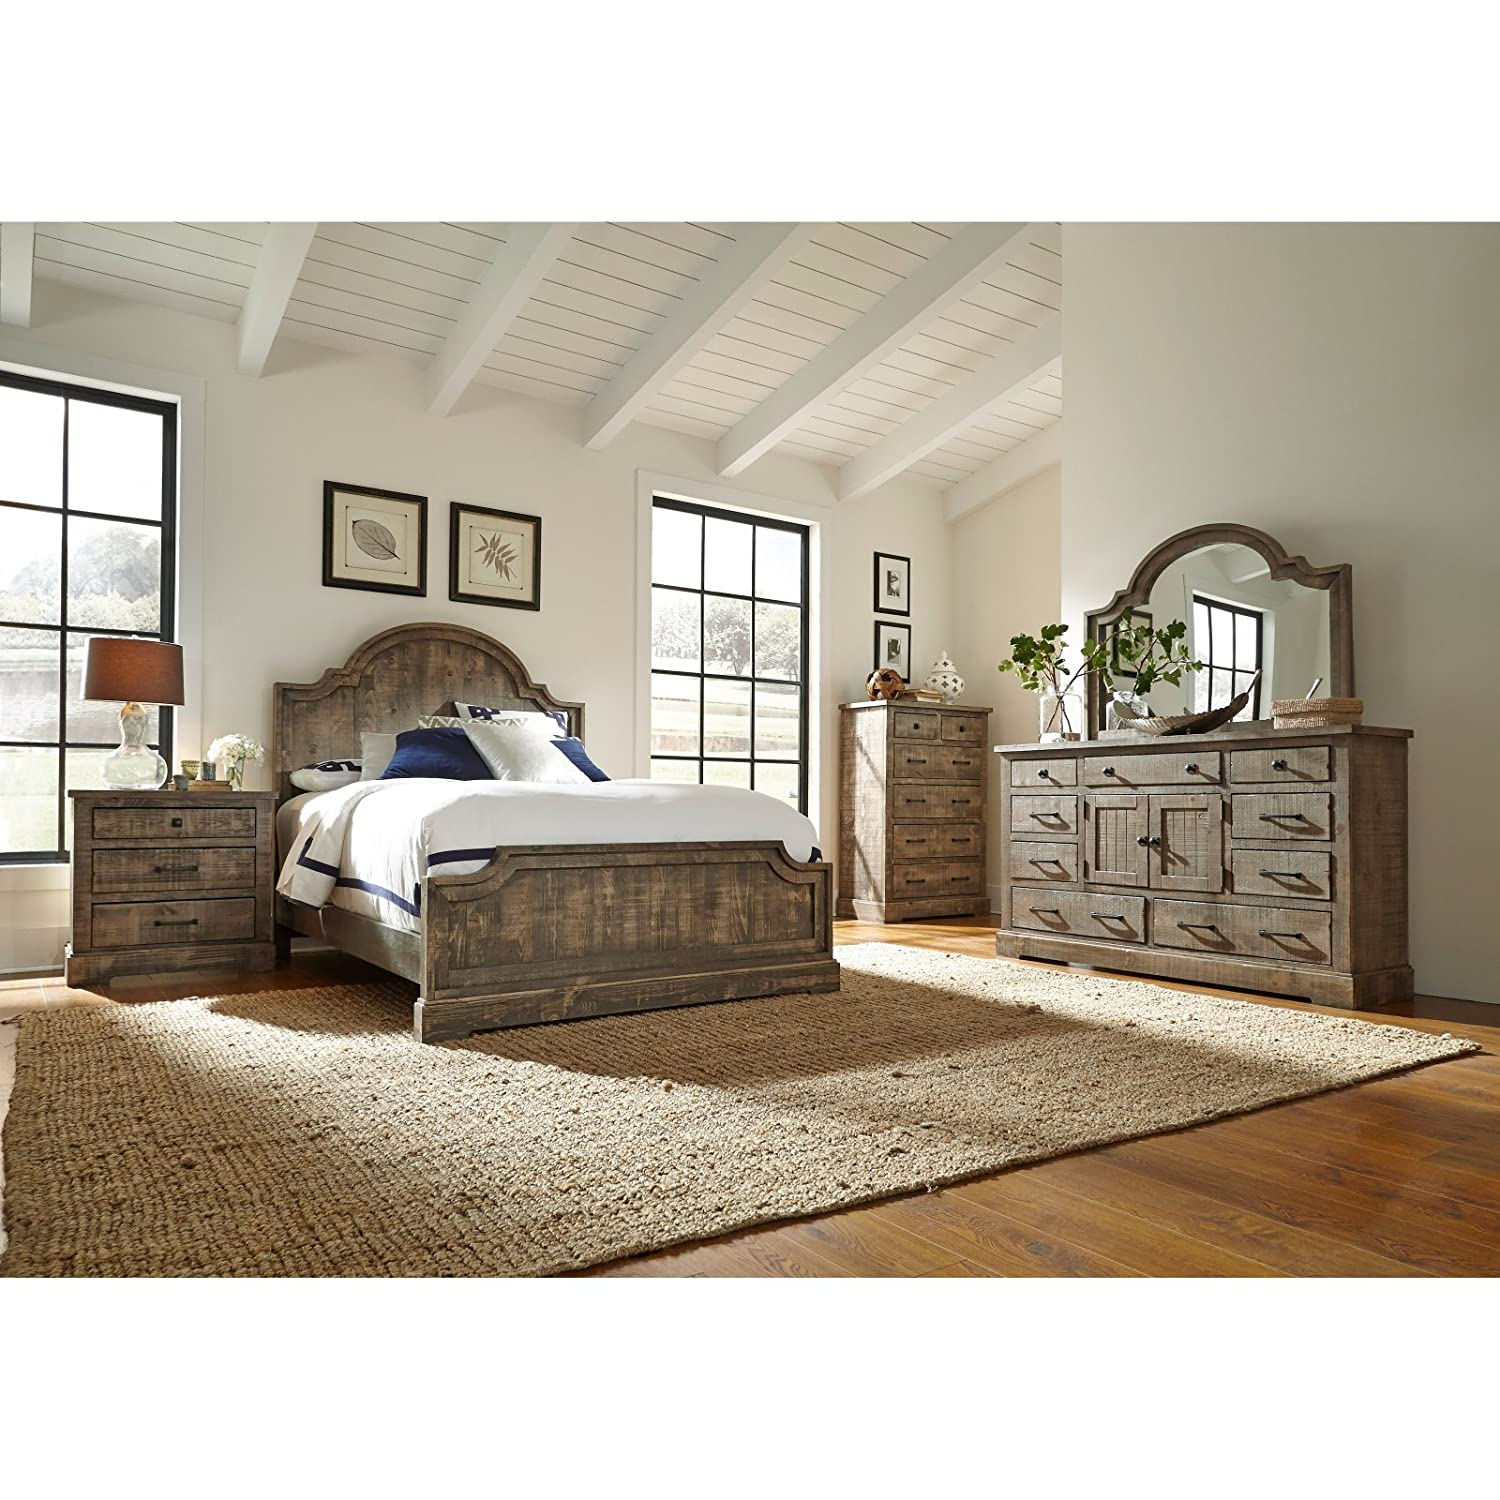 Amazon Panel plete Bed Weathered Gray Queen Kitchen & Dining